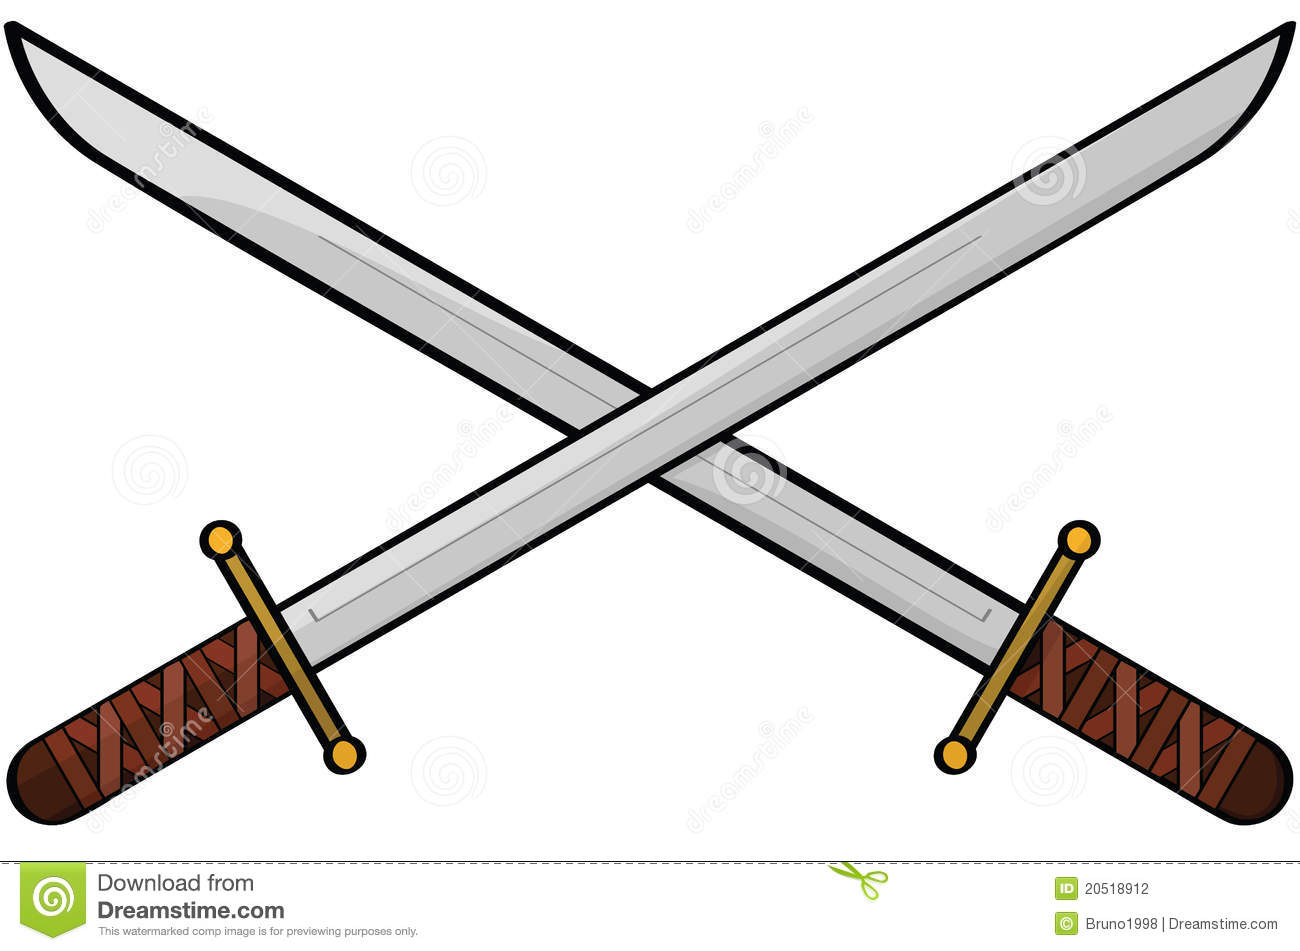 How to draw a two swords crossing